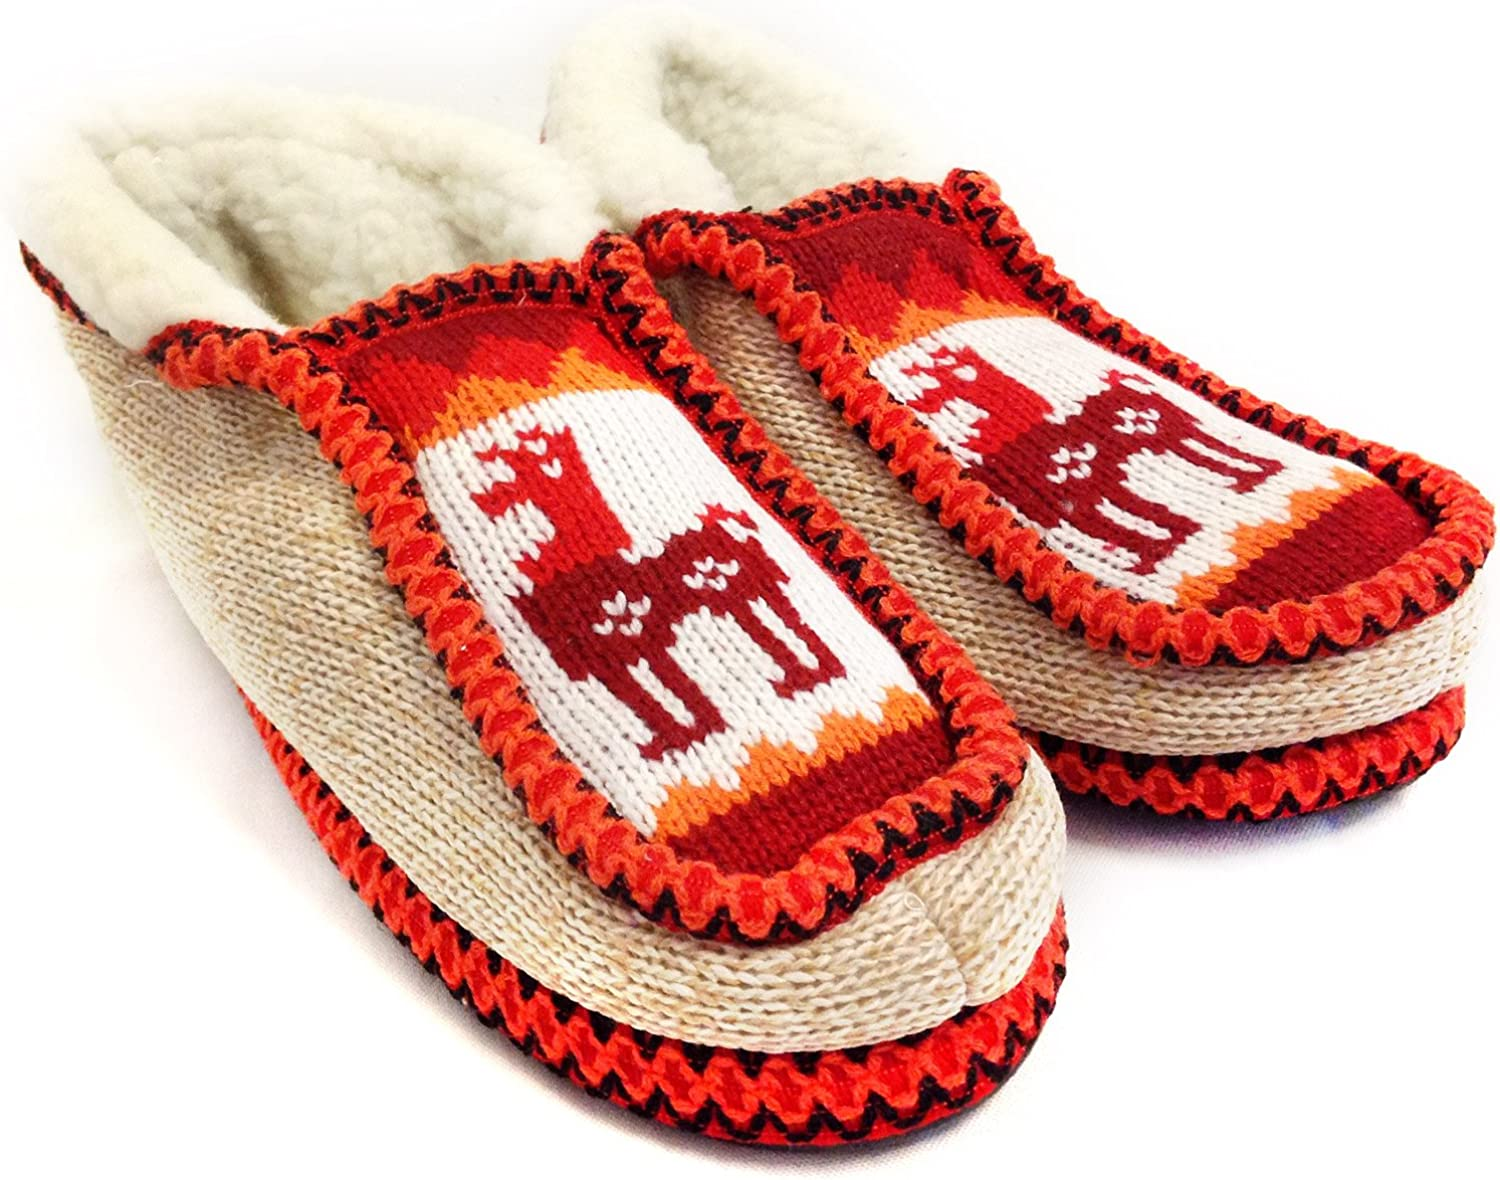 The silverino Slippers Handmade Moccasin (Real Wool Inside ) from Salta, silverina Red